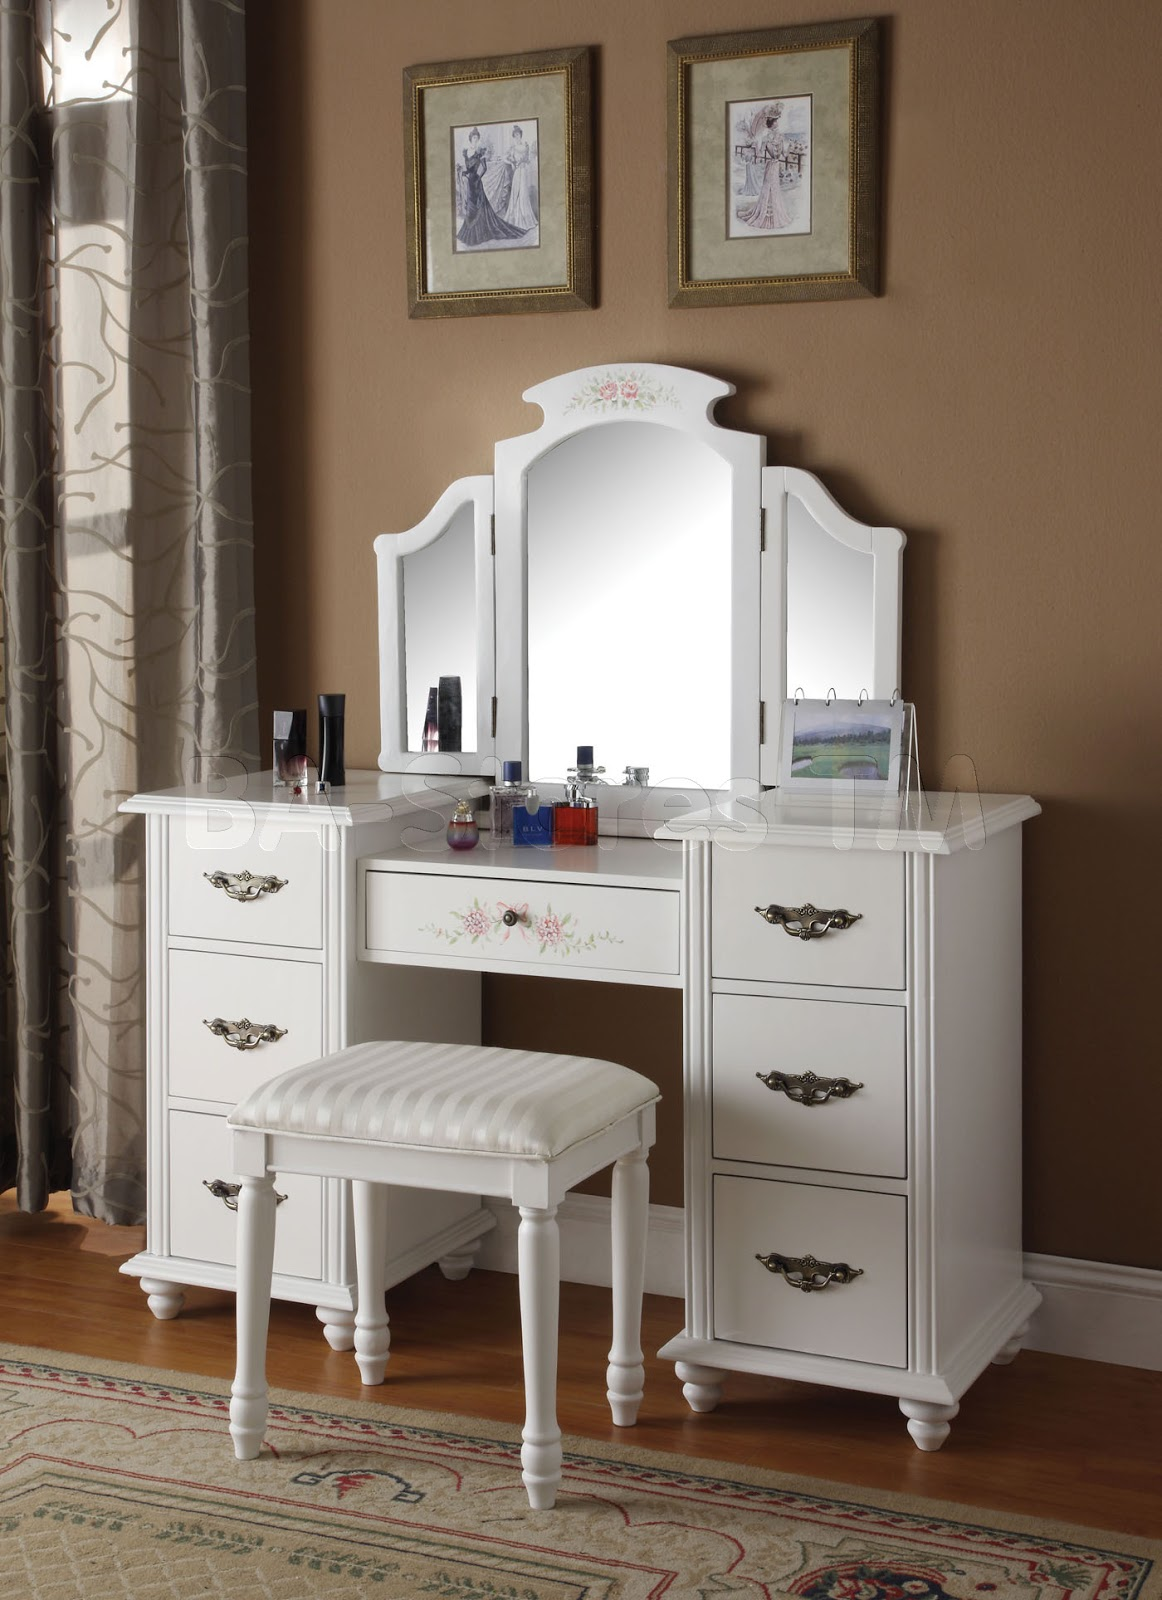 Bedroom vanities a new female 39 s best buddy dreams house - What is vanity in design this home ...